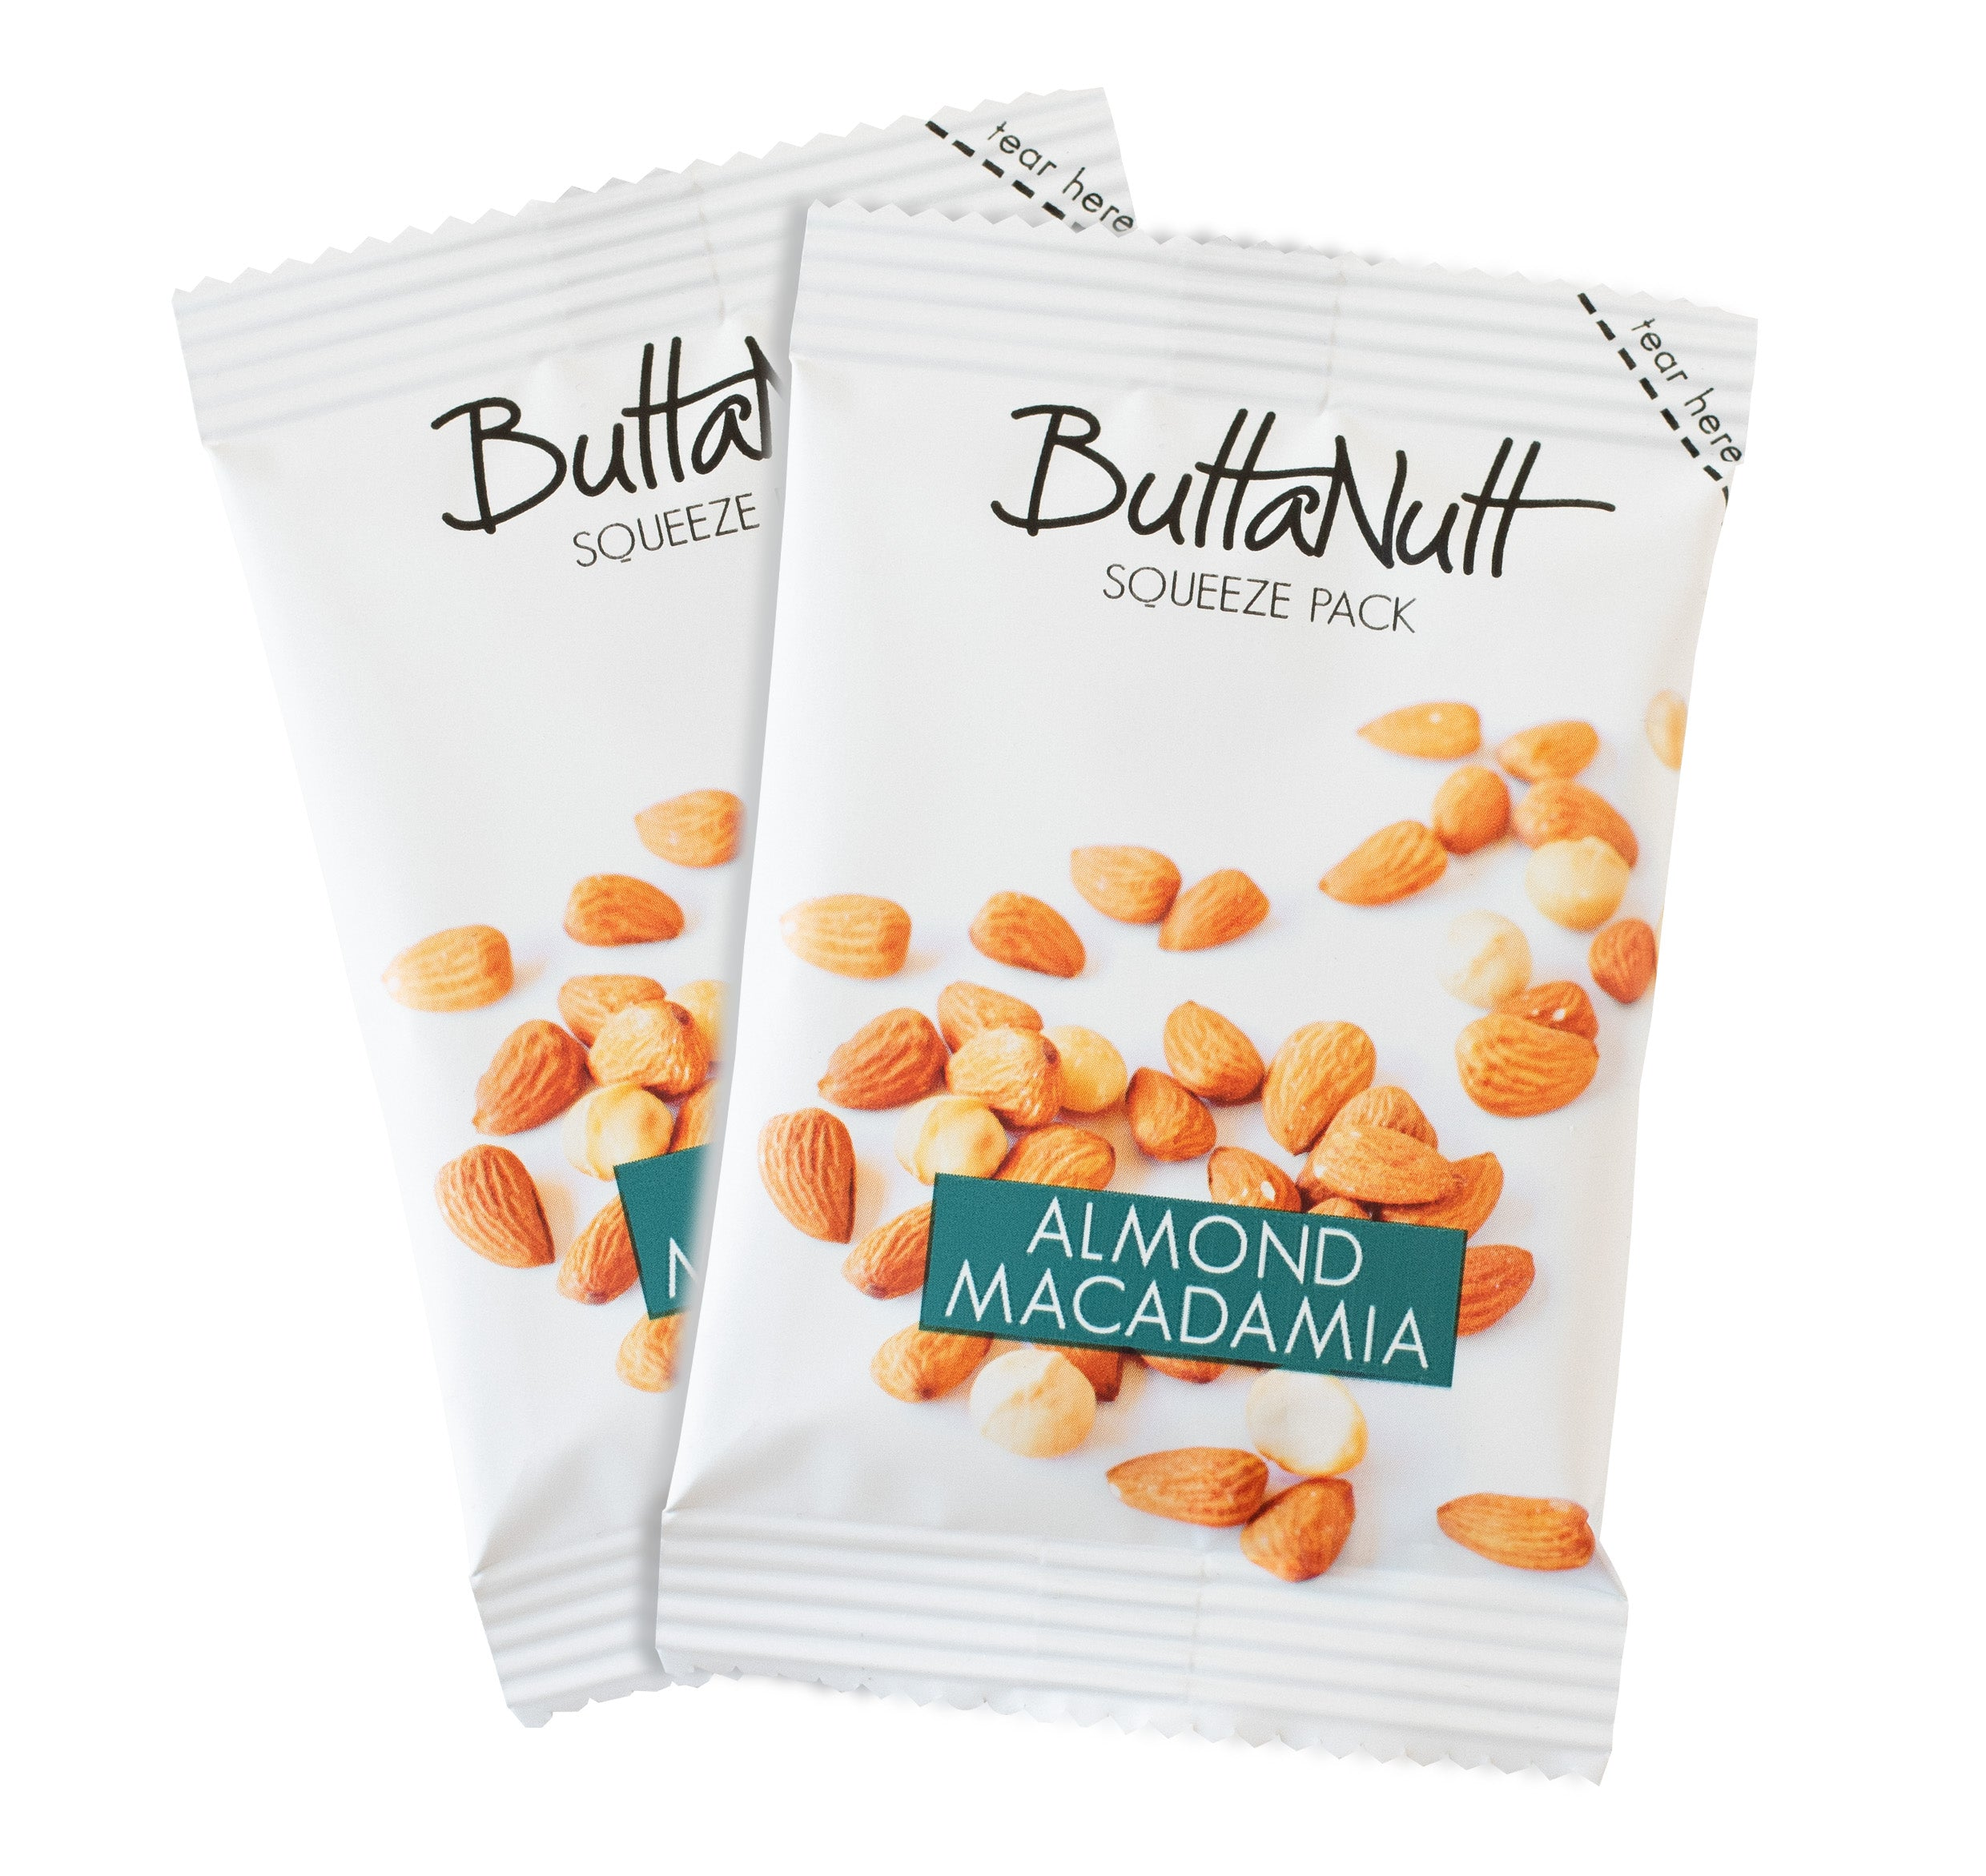 Almond Macadamia Squeeze Pack (32g)